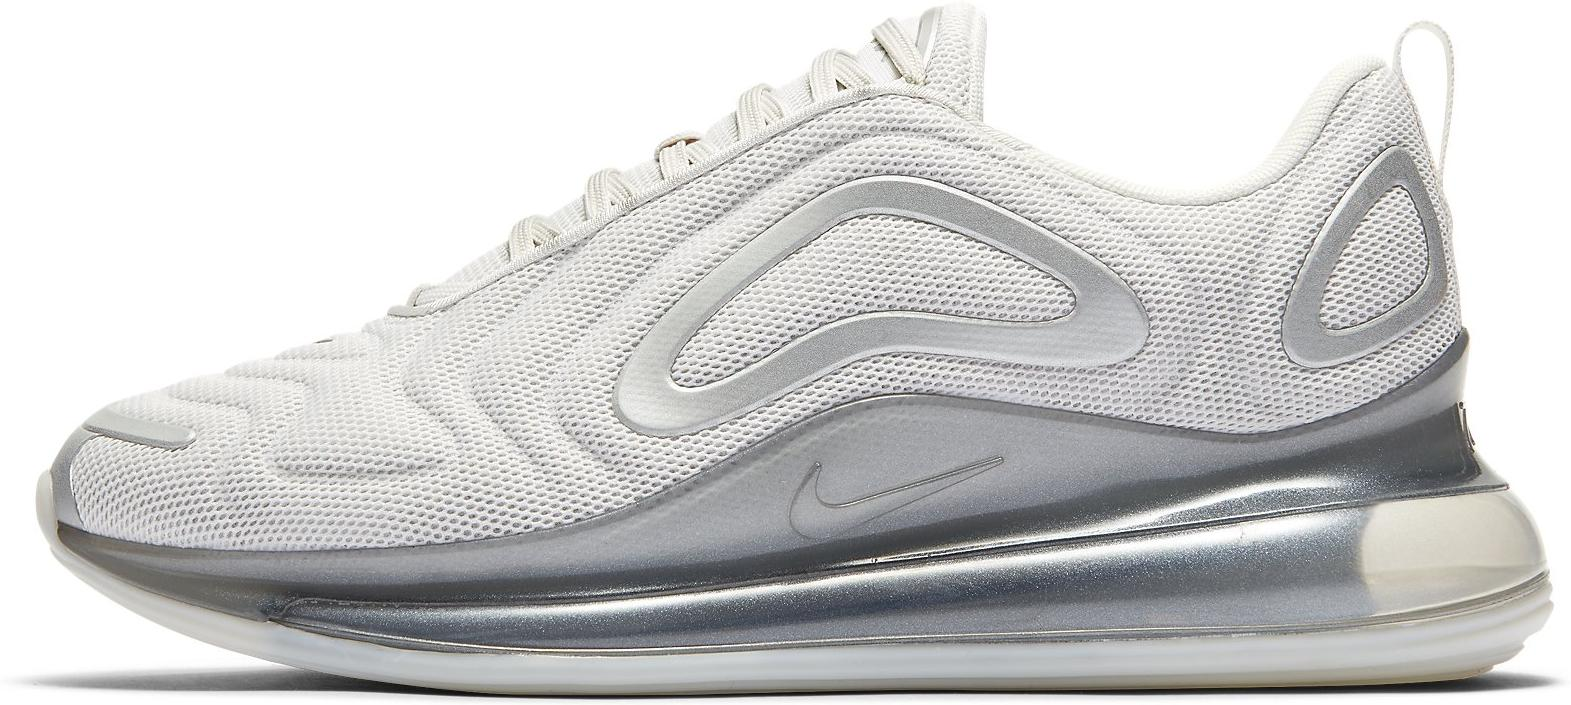 Sneaker Nike Zapatillas Nike AIR MAX 720